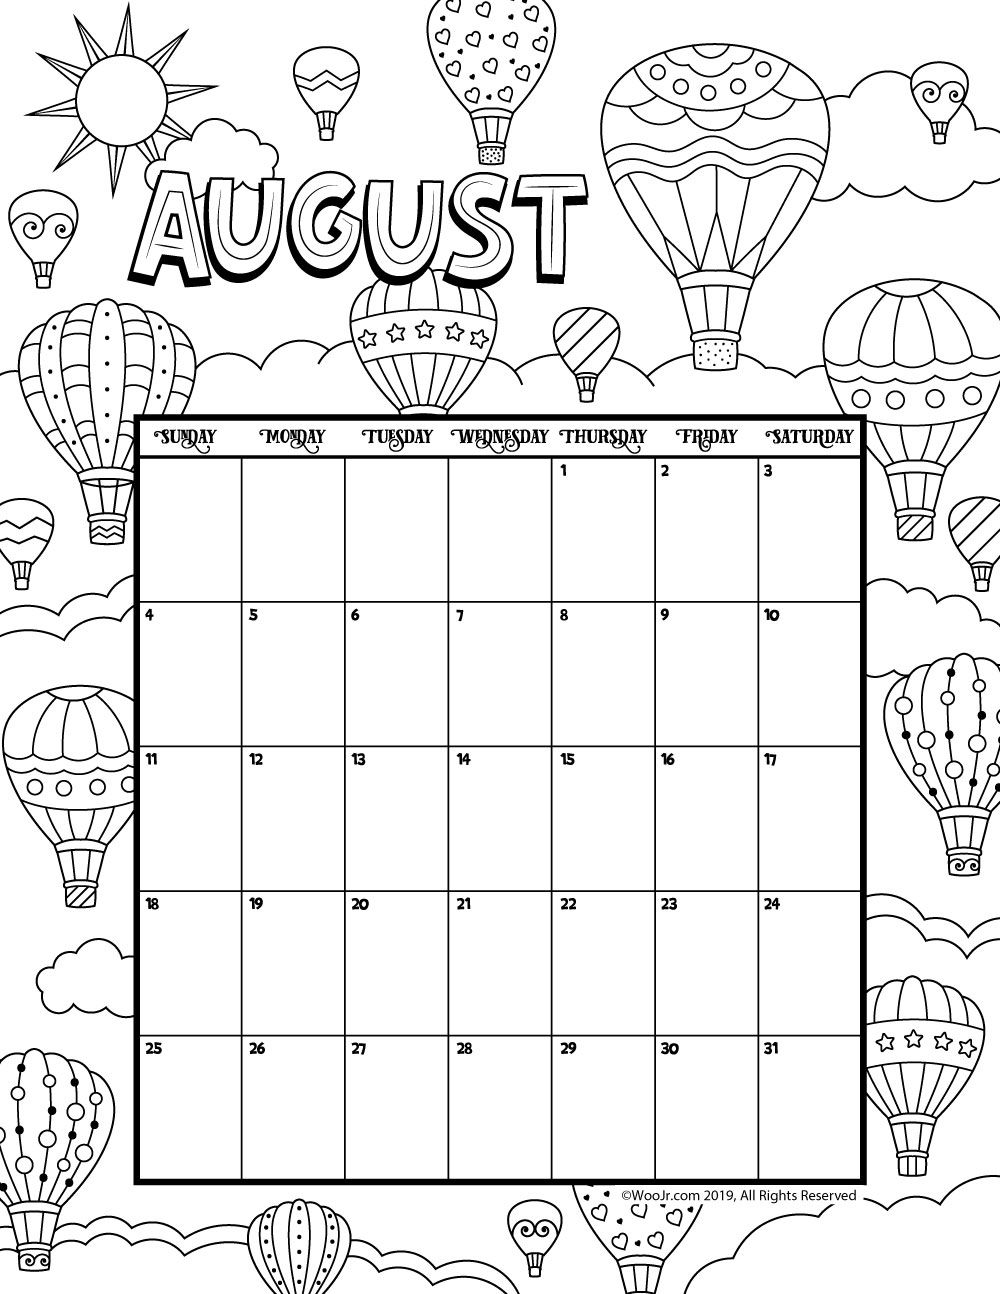 Pin By Patb On Coloring Pages Summer Coloring Pages Coloring